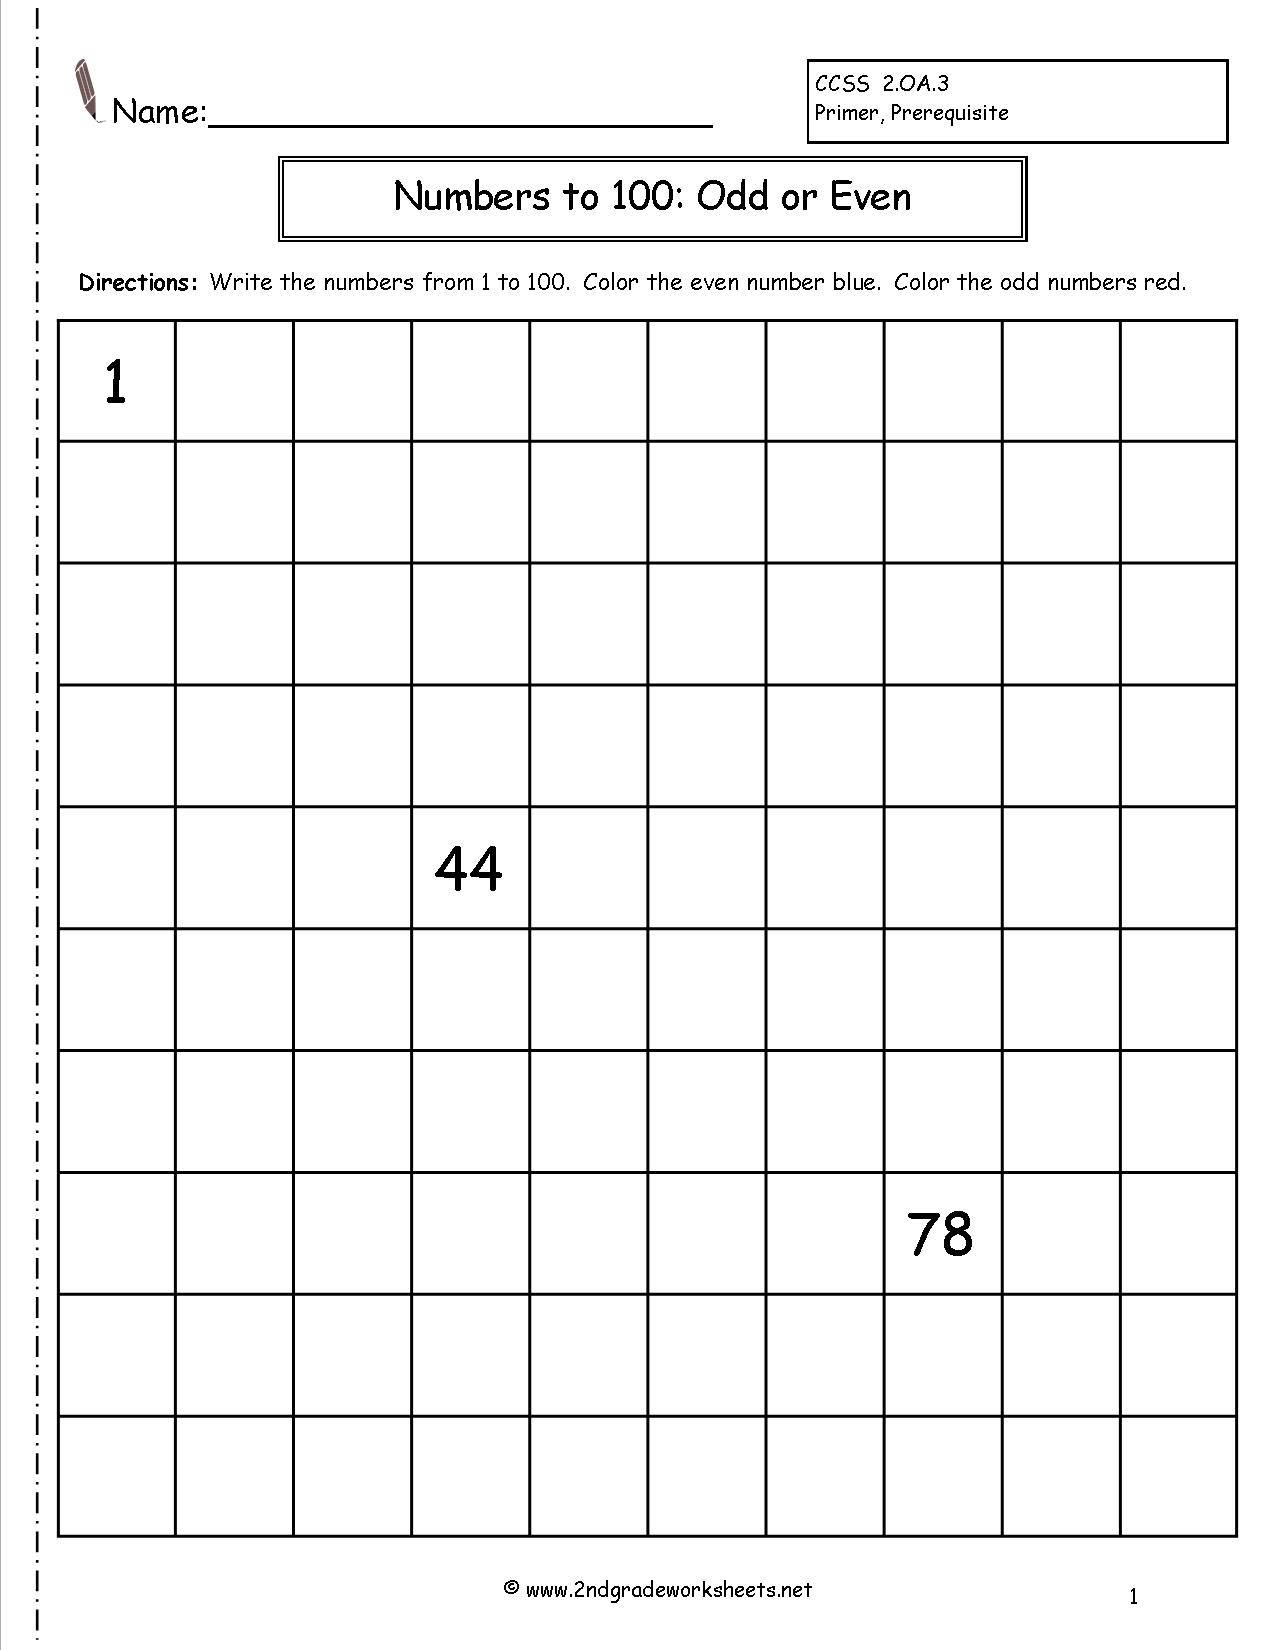 13 Best Images Of Number Worksheets Kindergarten Tracing 1 100